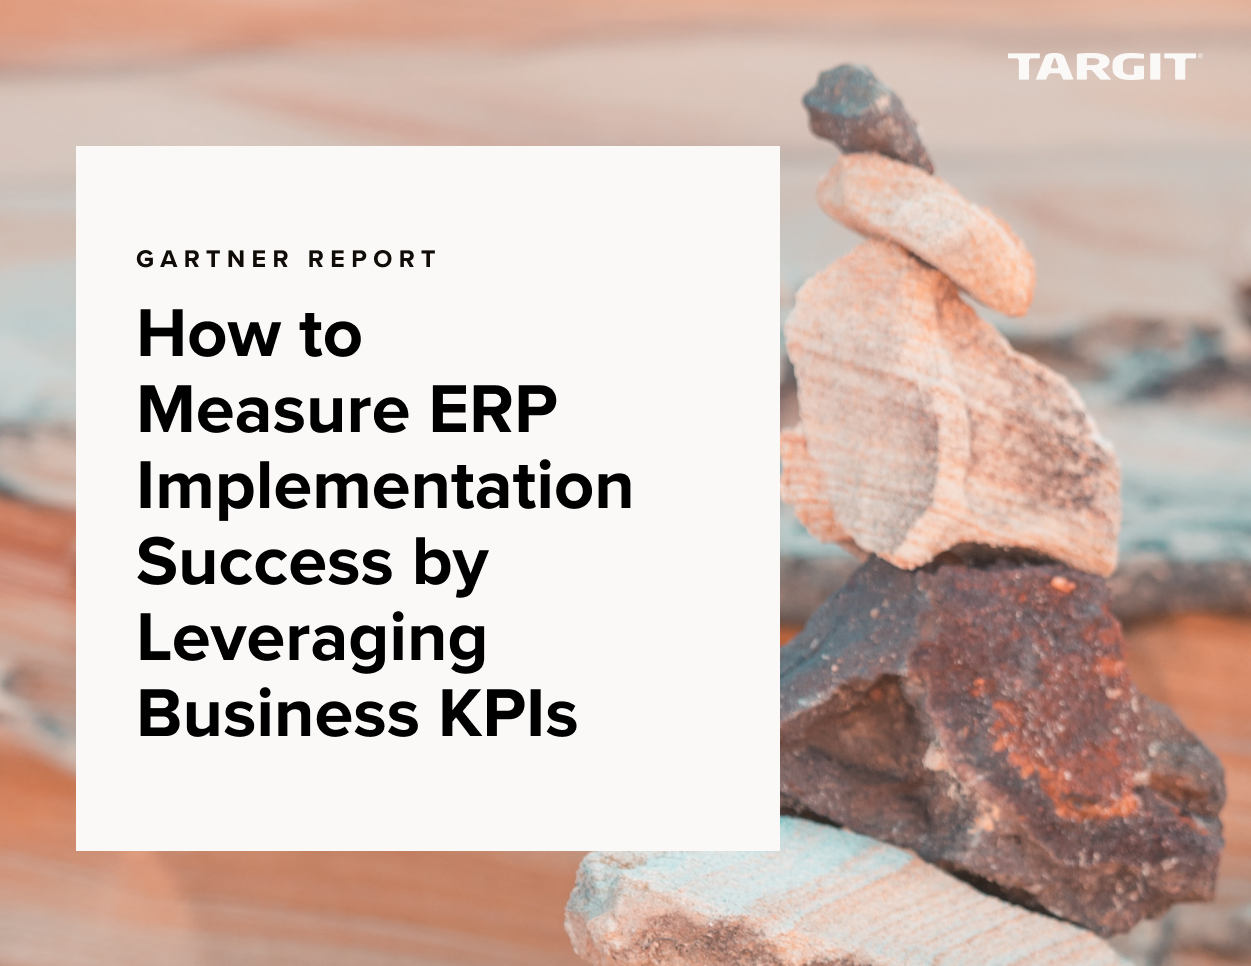 How to Measure ERP Implementation Success by Leveraging Business KPIs - Gartner Report